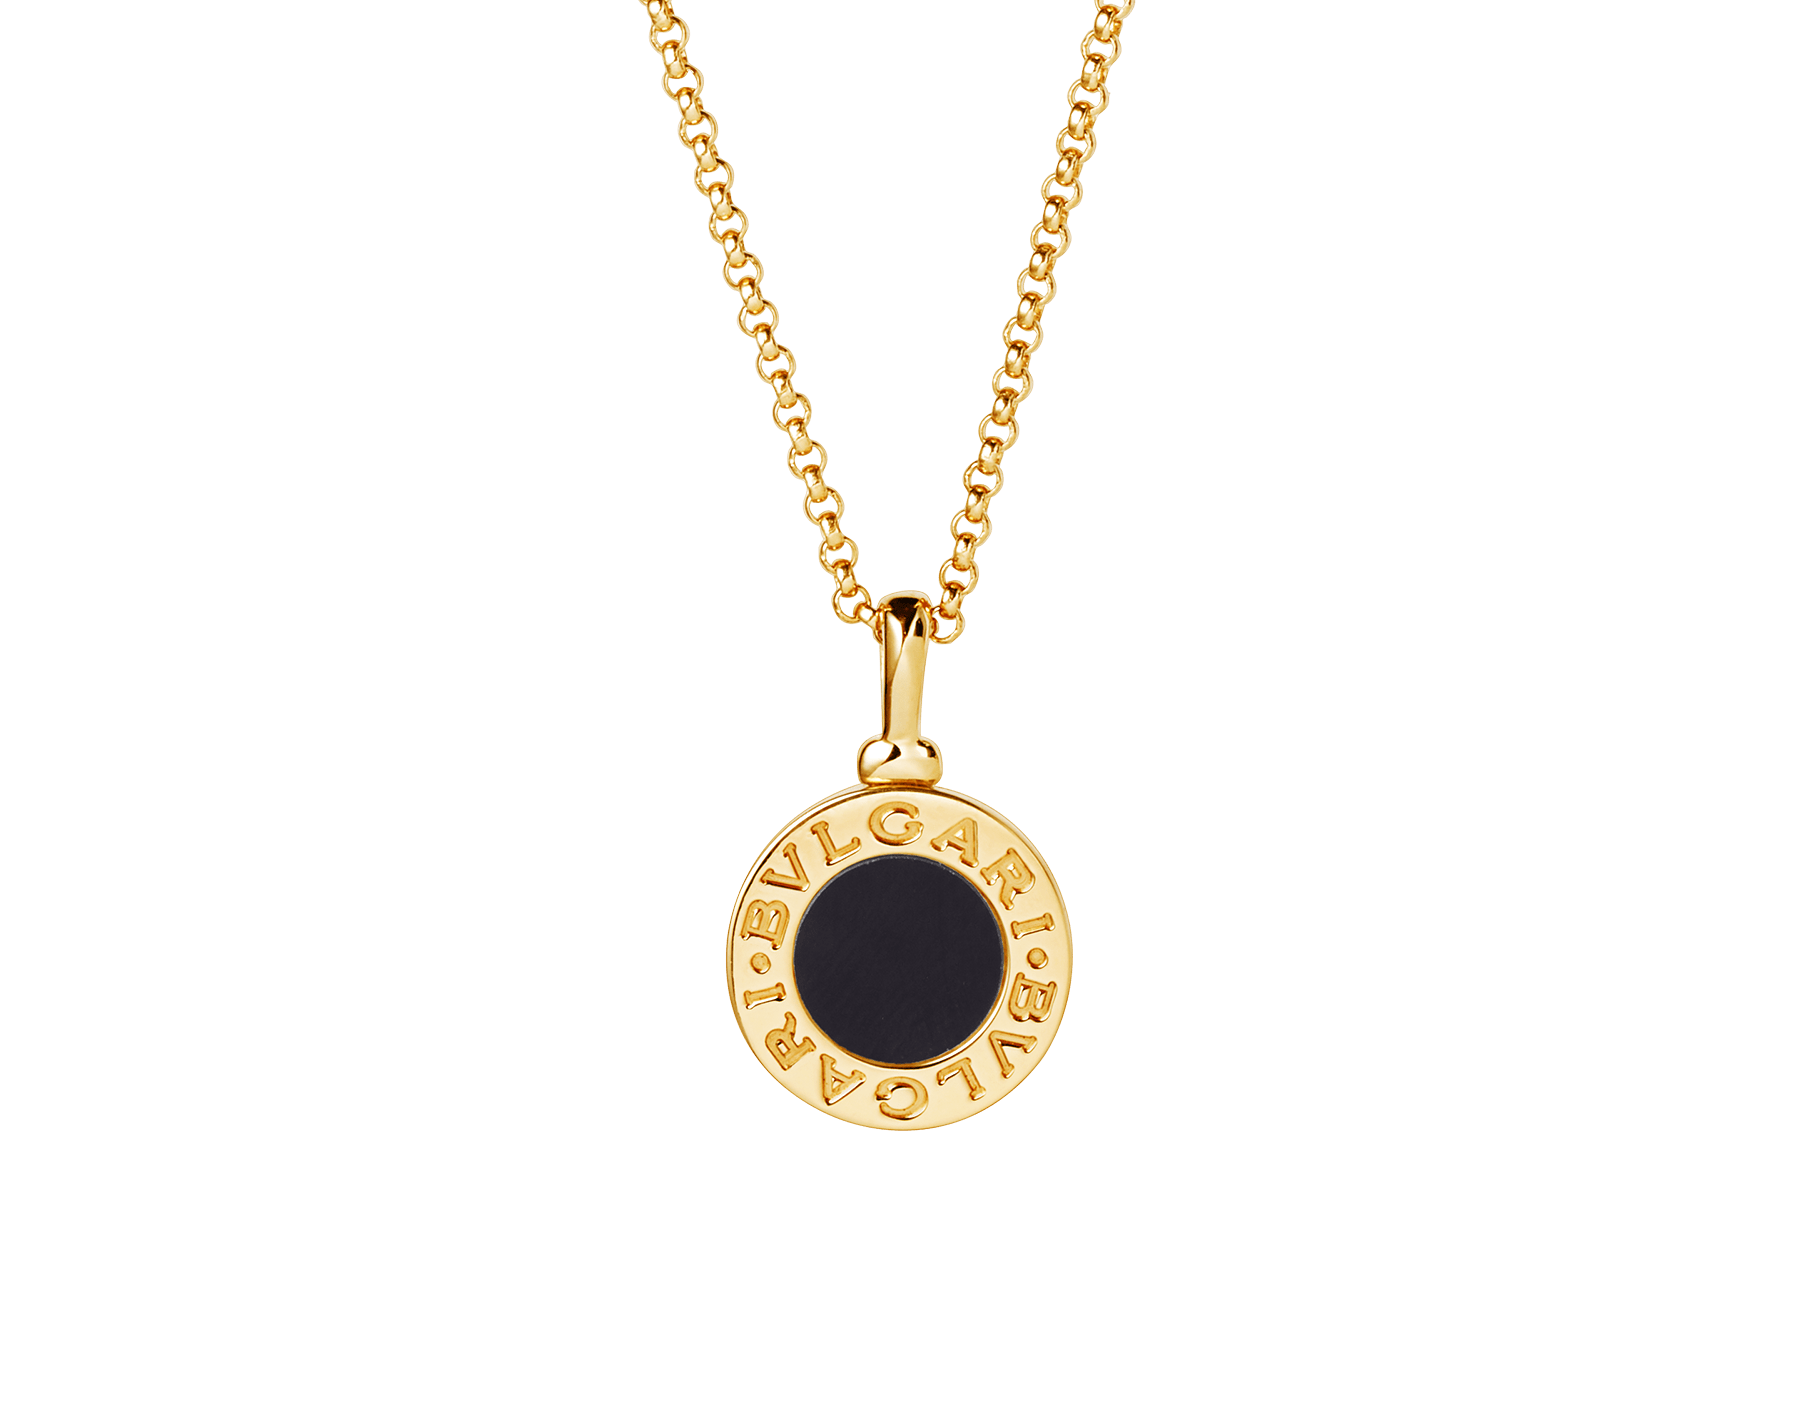 BVLGARI BVLGARI necklace with 18 kt yellow gold chain and 18 kt yellow gold pendant set with onyx 350554 image 1